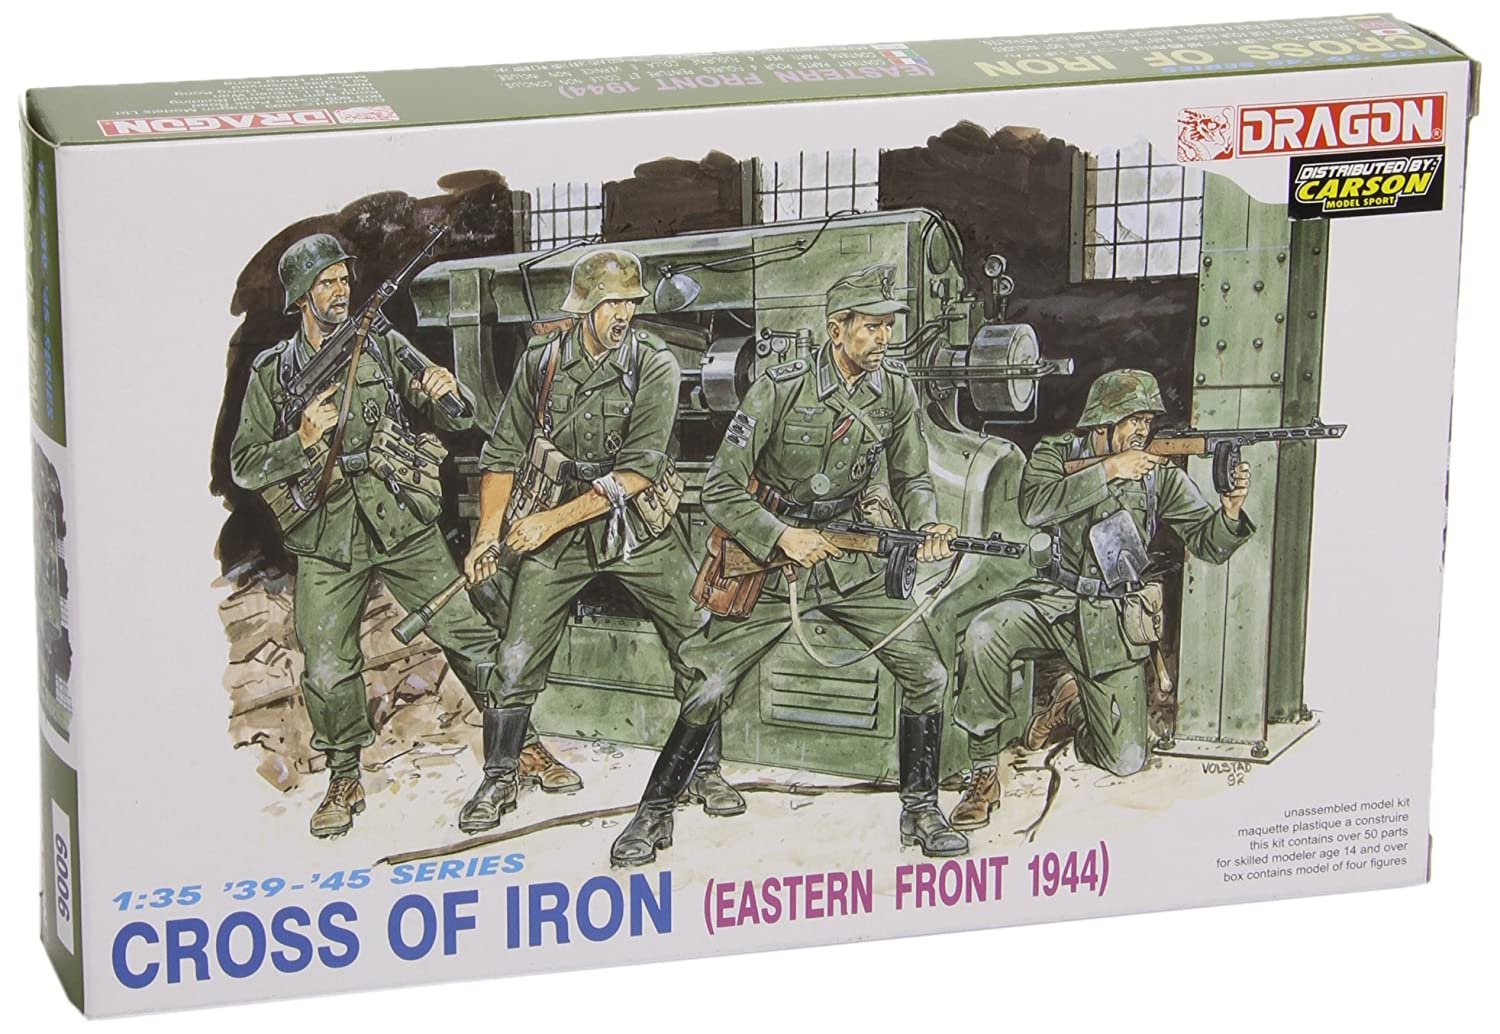 Dragon 500776006 - 1:35 Cross of Iron, Eastern Front 1944